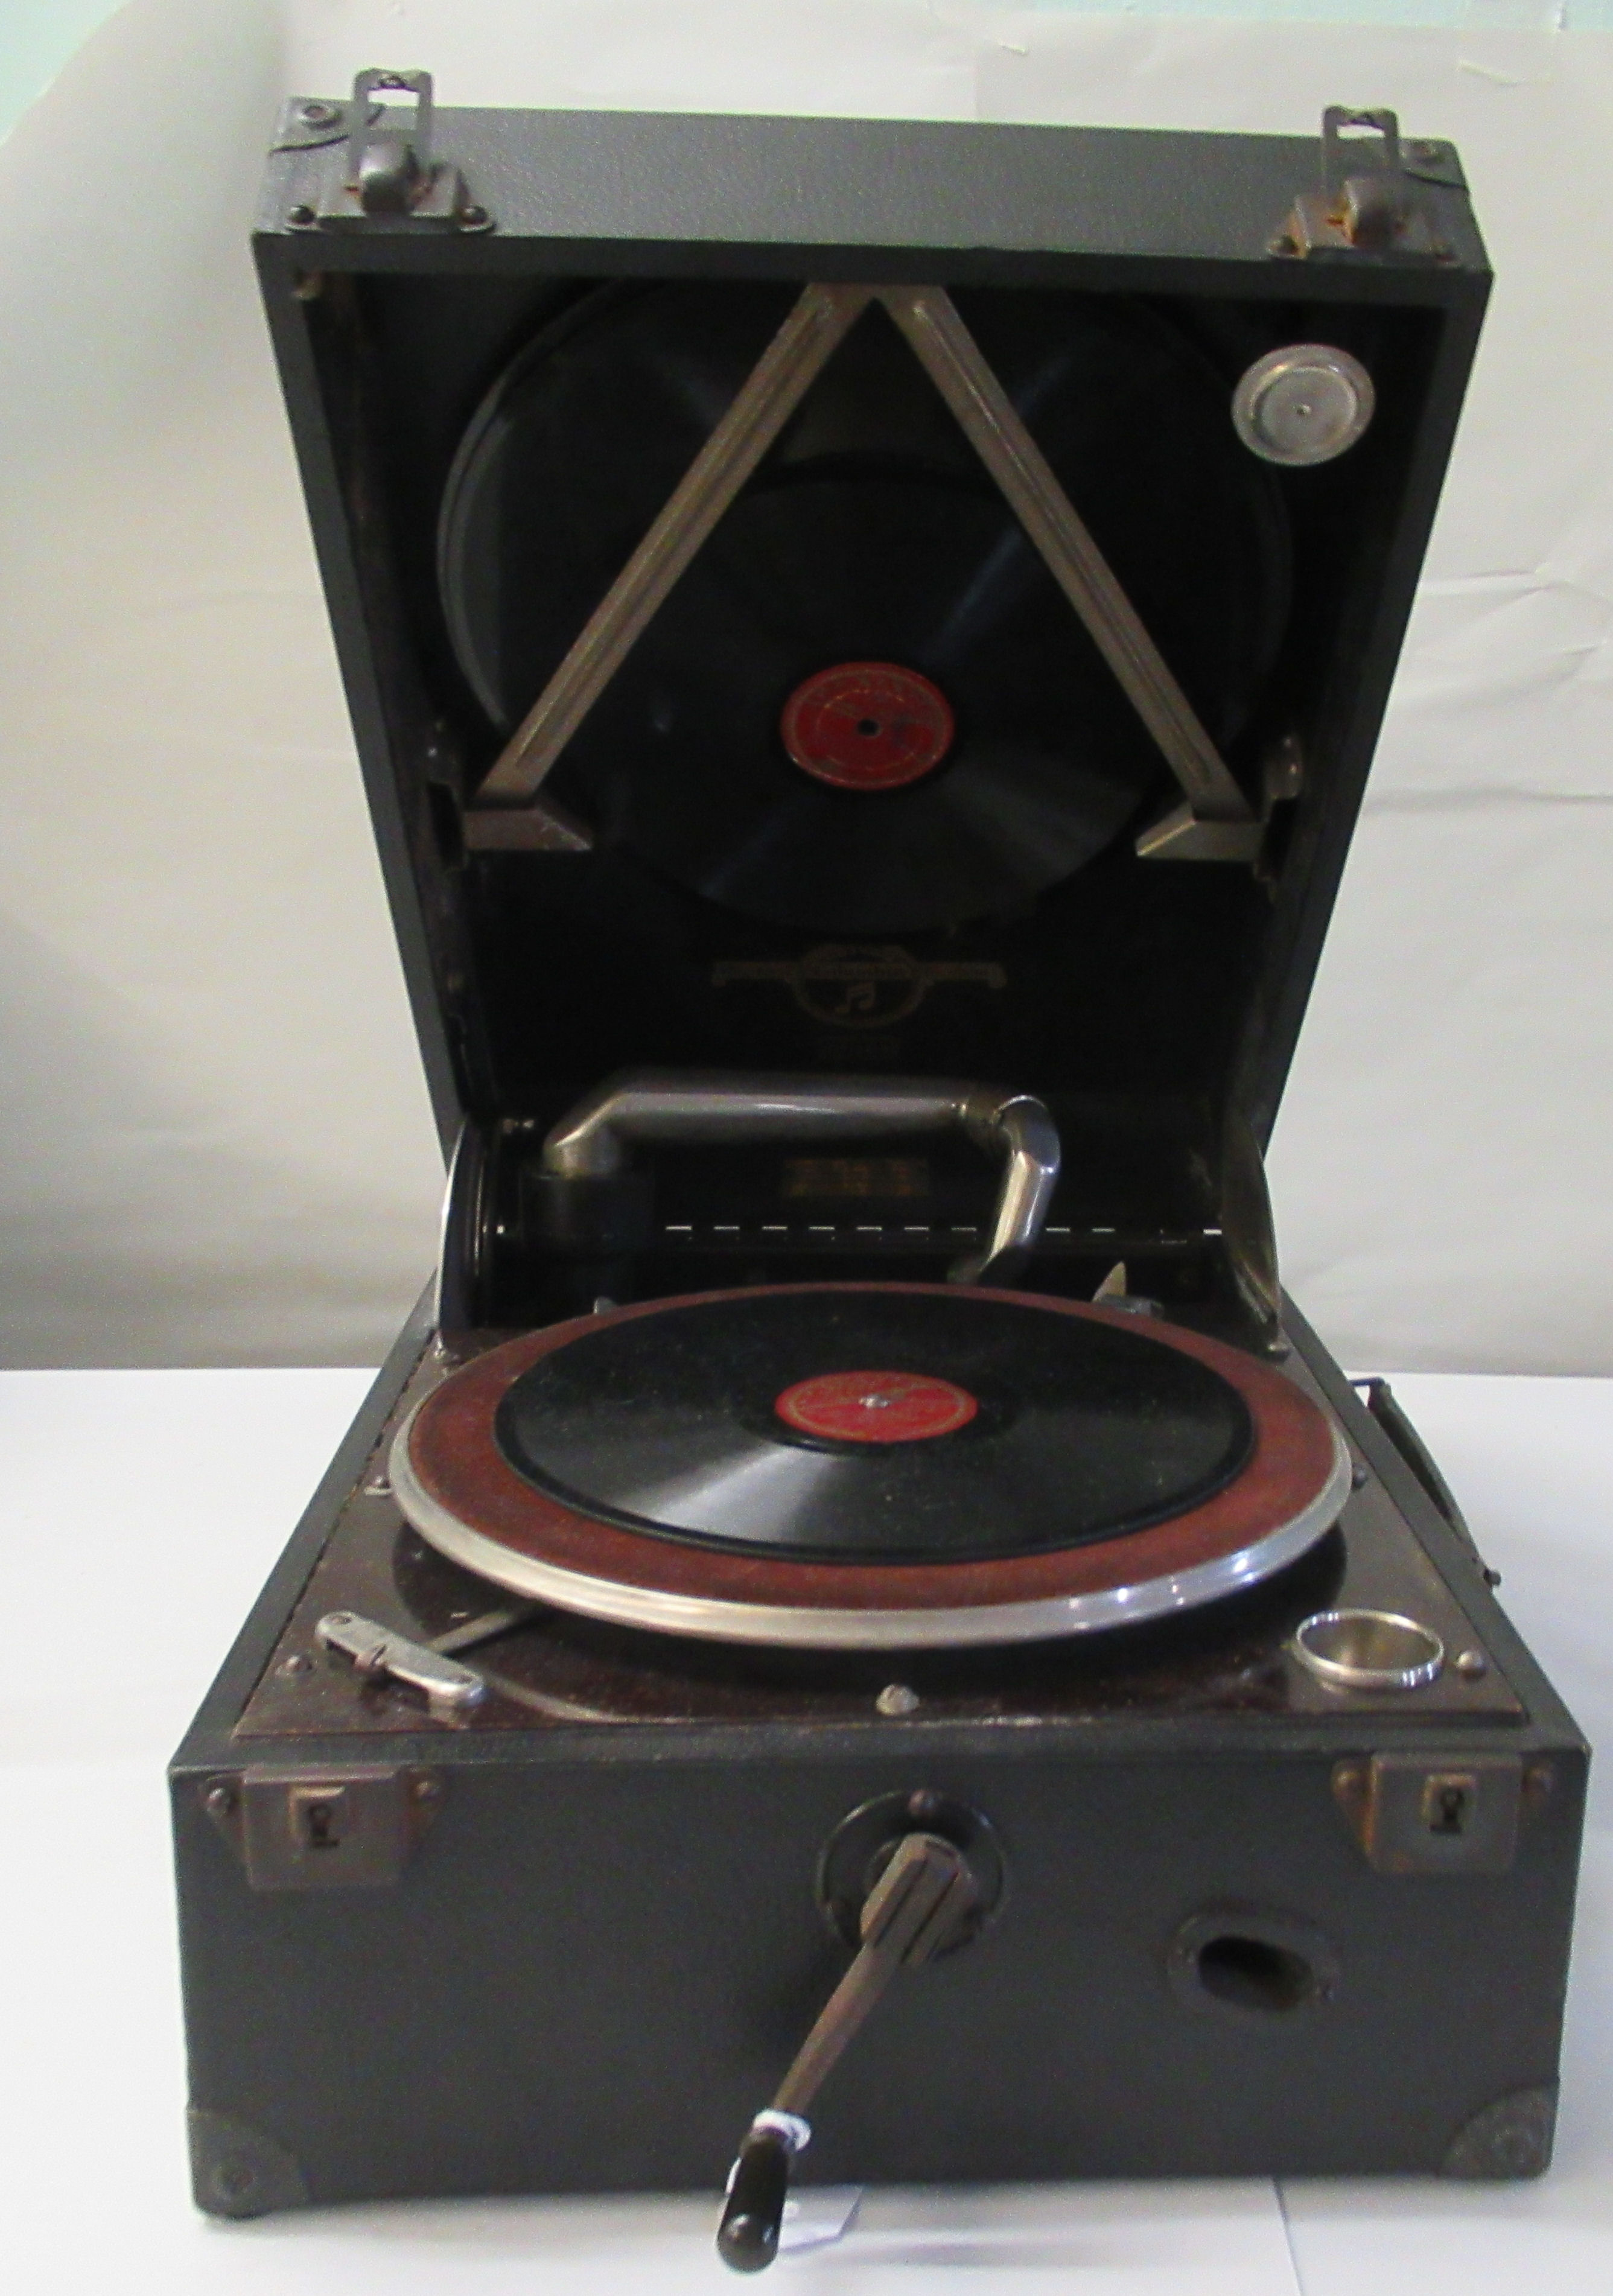 A 1930s Columbia portable gramophone with a folding handle, in a black fabric covered case